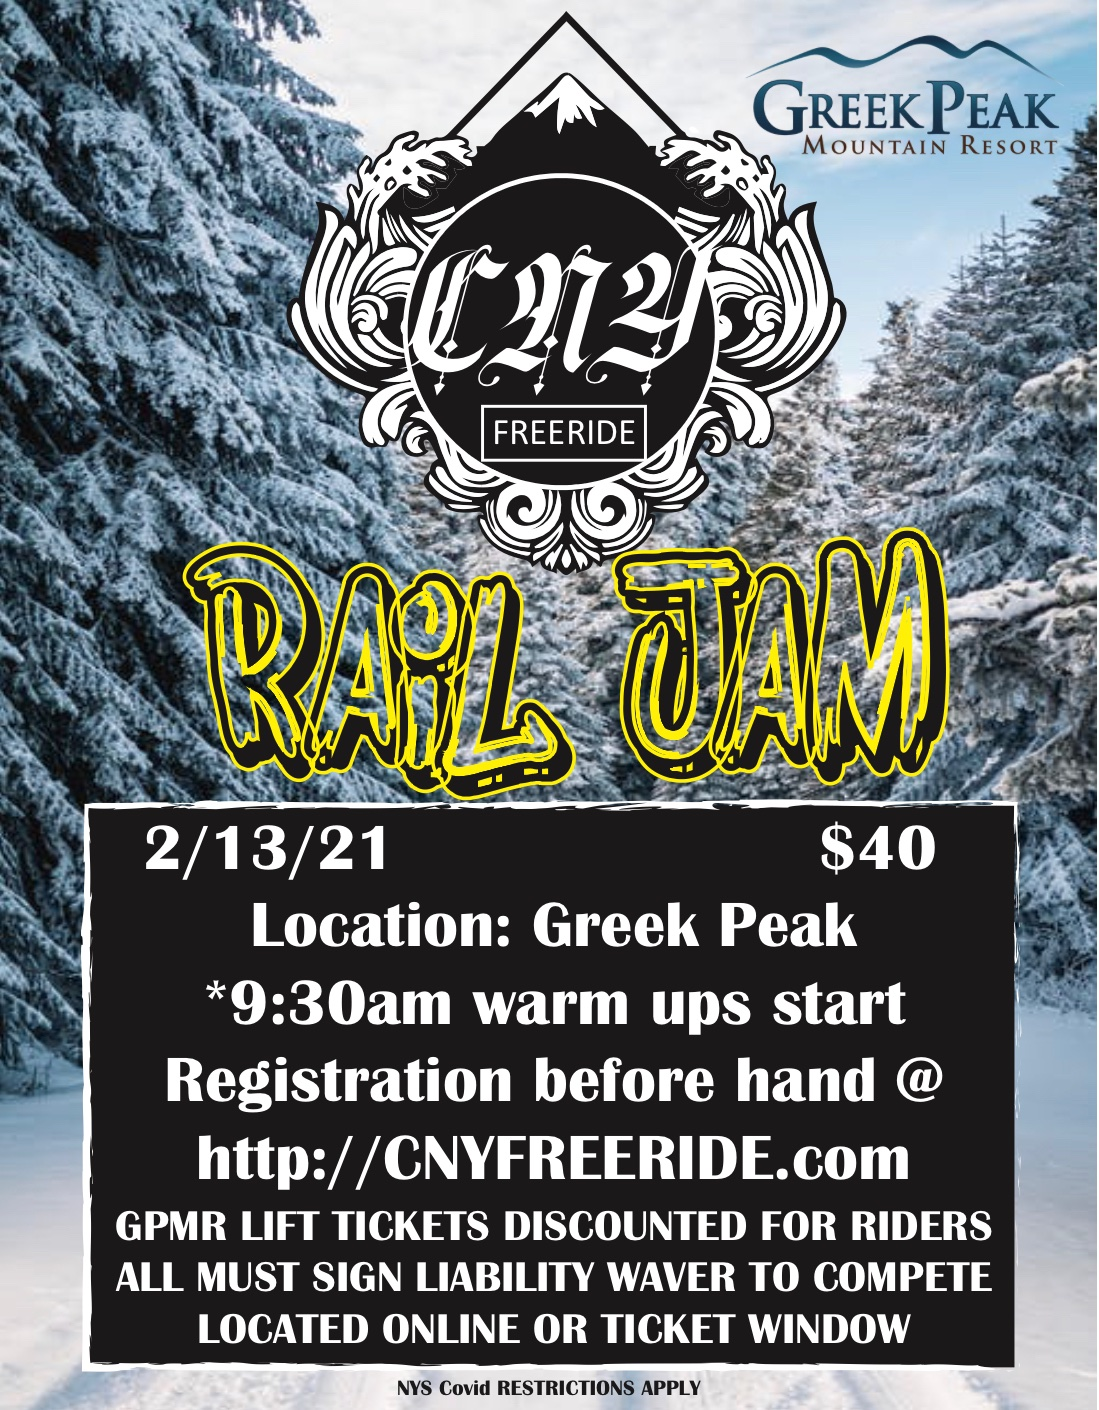 2021 CNY Freeride Rail Jam Competition at Greek Peak. This is a ski/snowboard competition for people to come and sign up for and compete in for different prizes. It is this Saturday 2/13/21 at Greek Peak. Registration is beforehand, online at cnyfreeride.com. Warm-ups begin at 9:30am. Lift tickets, provided by Greek Peak Mountain Resort, are discounted for riders. Anyone who competes must sign a liability waiver to compete. These are available online or at the ticket window. New York State COVID restrictions DO apply to this event. The cost is $40.00.